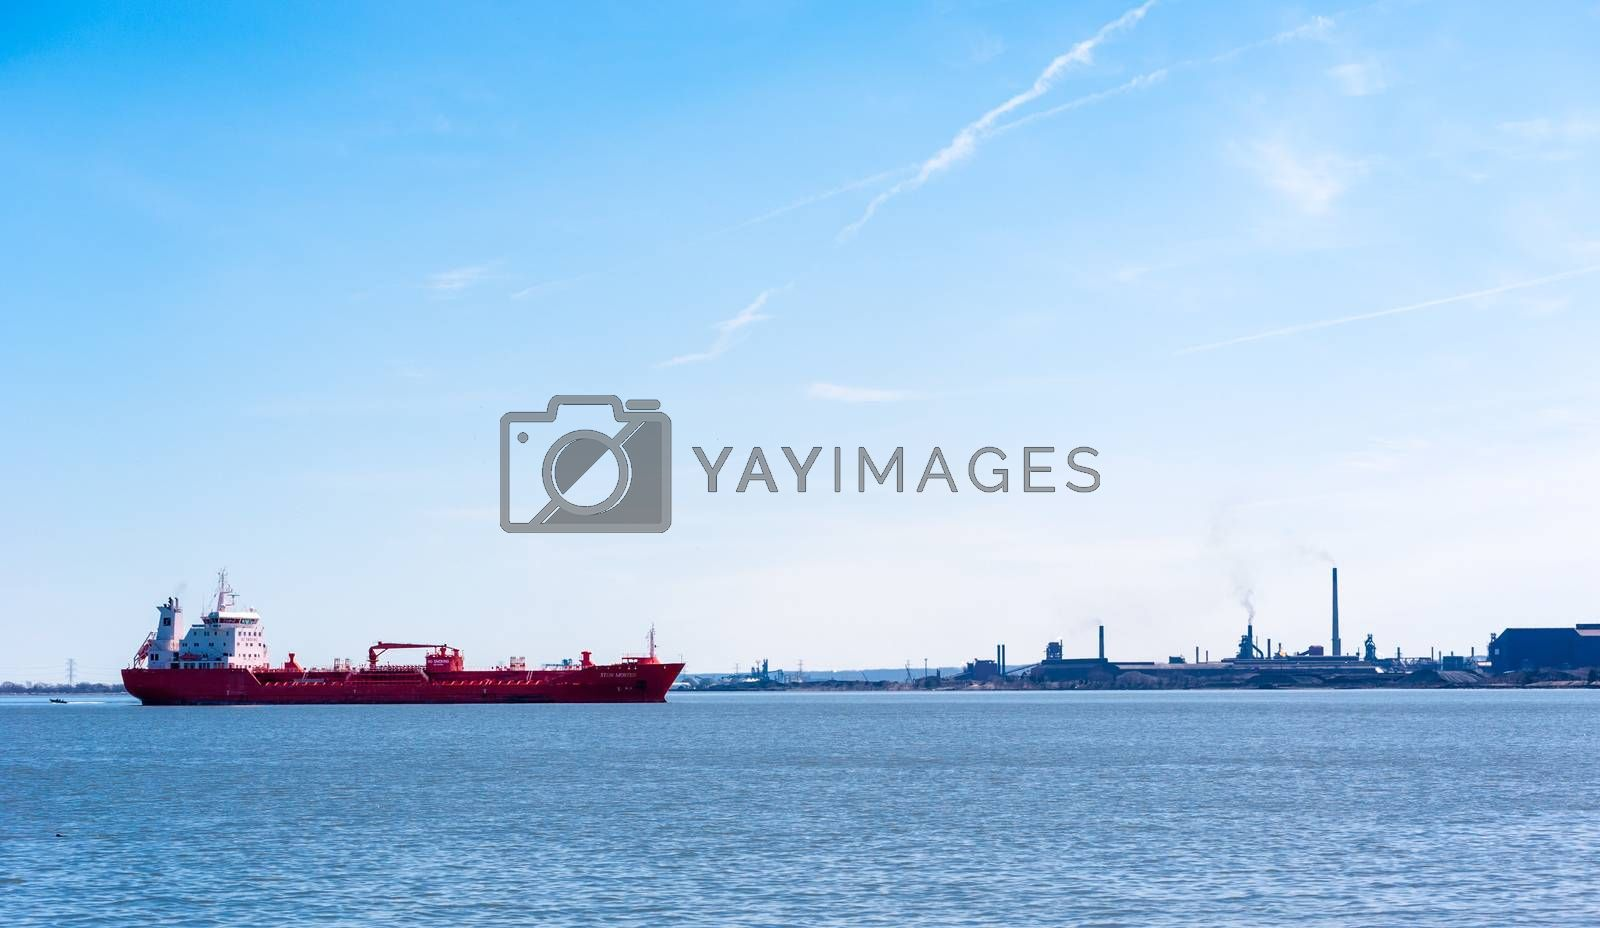 """HAMILTON, ONTARIO, CANADA - APRIL 21, 2018: The oil and chemical tanker """"Sten Moster"""" is at anchor in Hamilton Harbour near the industrial area of the city."""